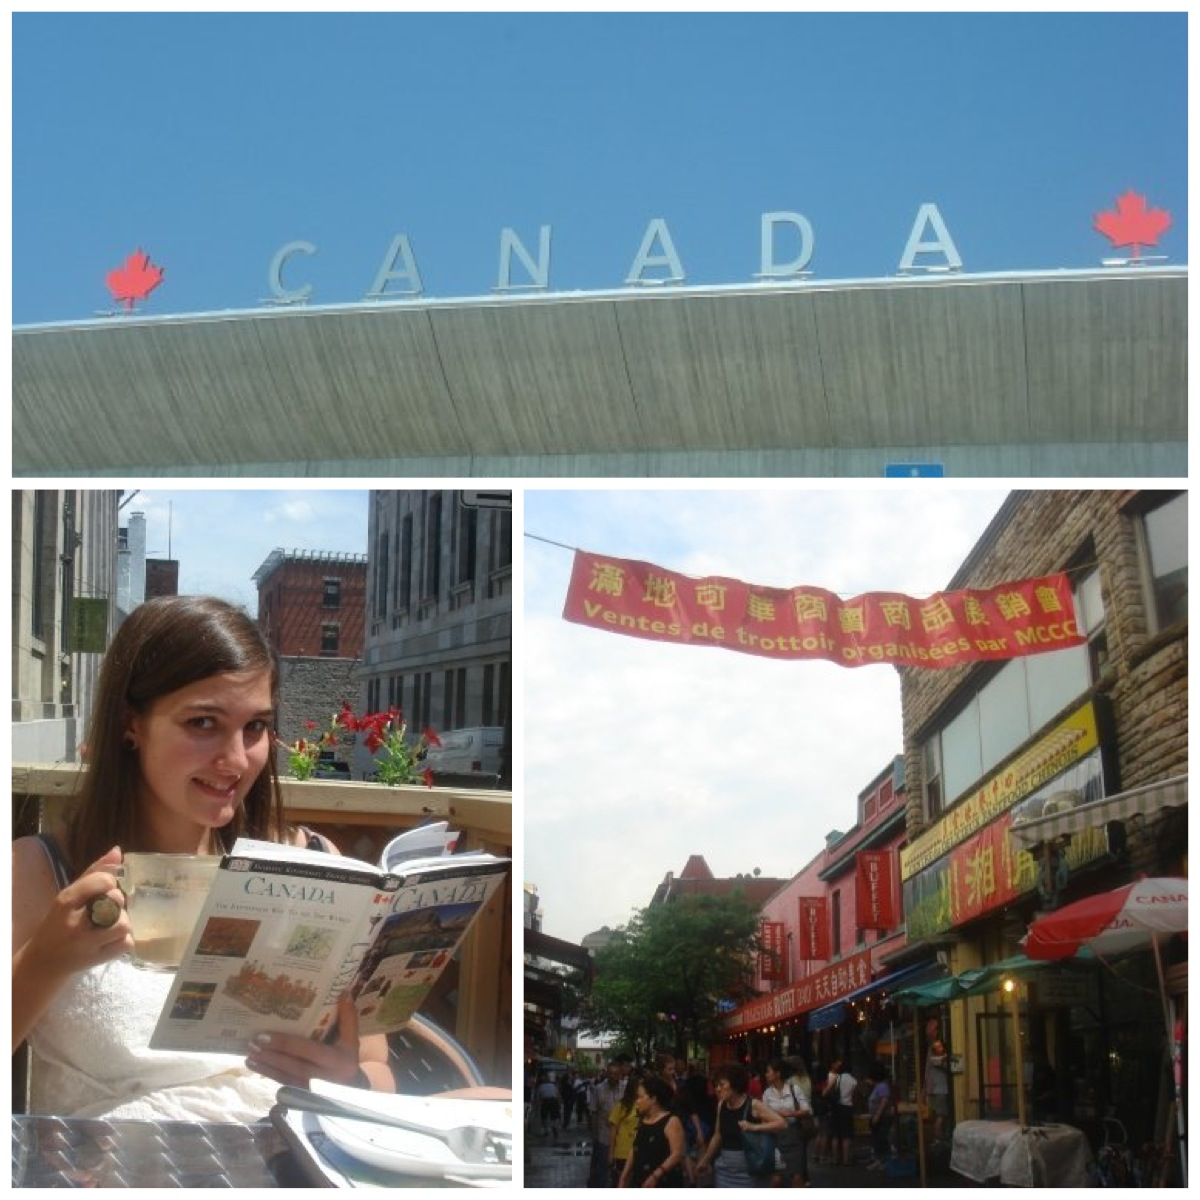 Montreal - I was in Chinatown there when Michael Jackson died. WHERE WERE YOU